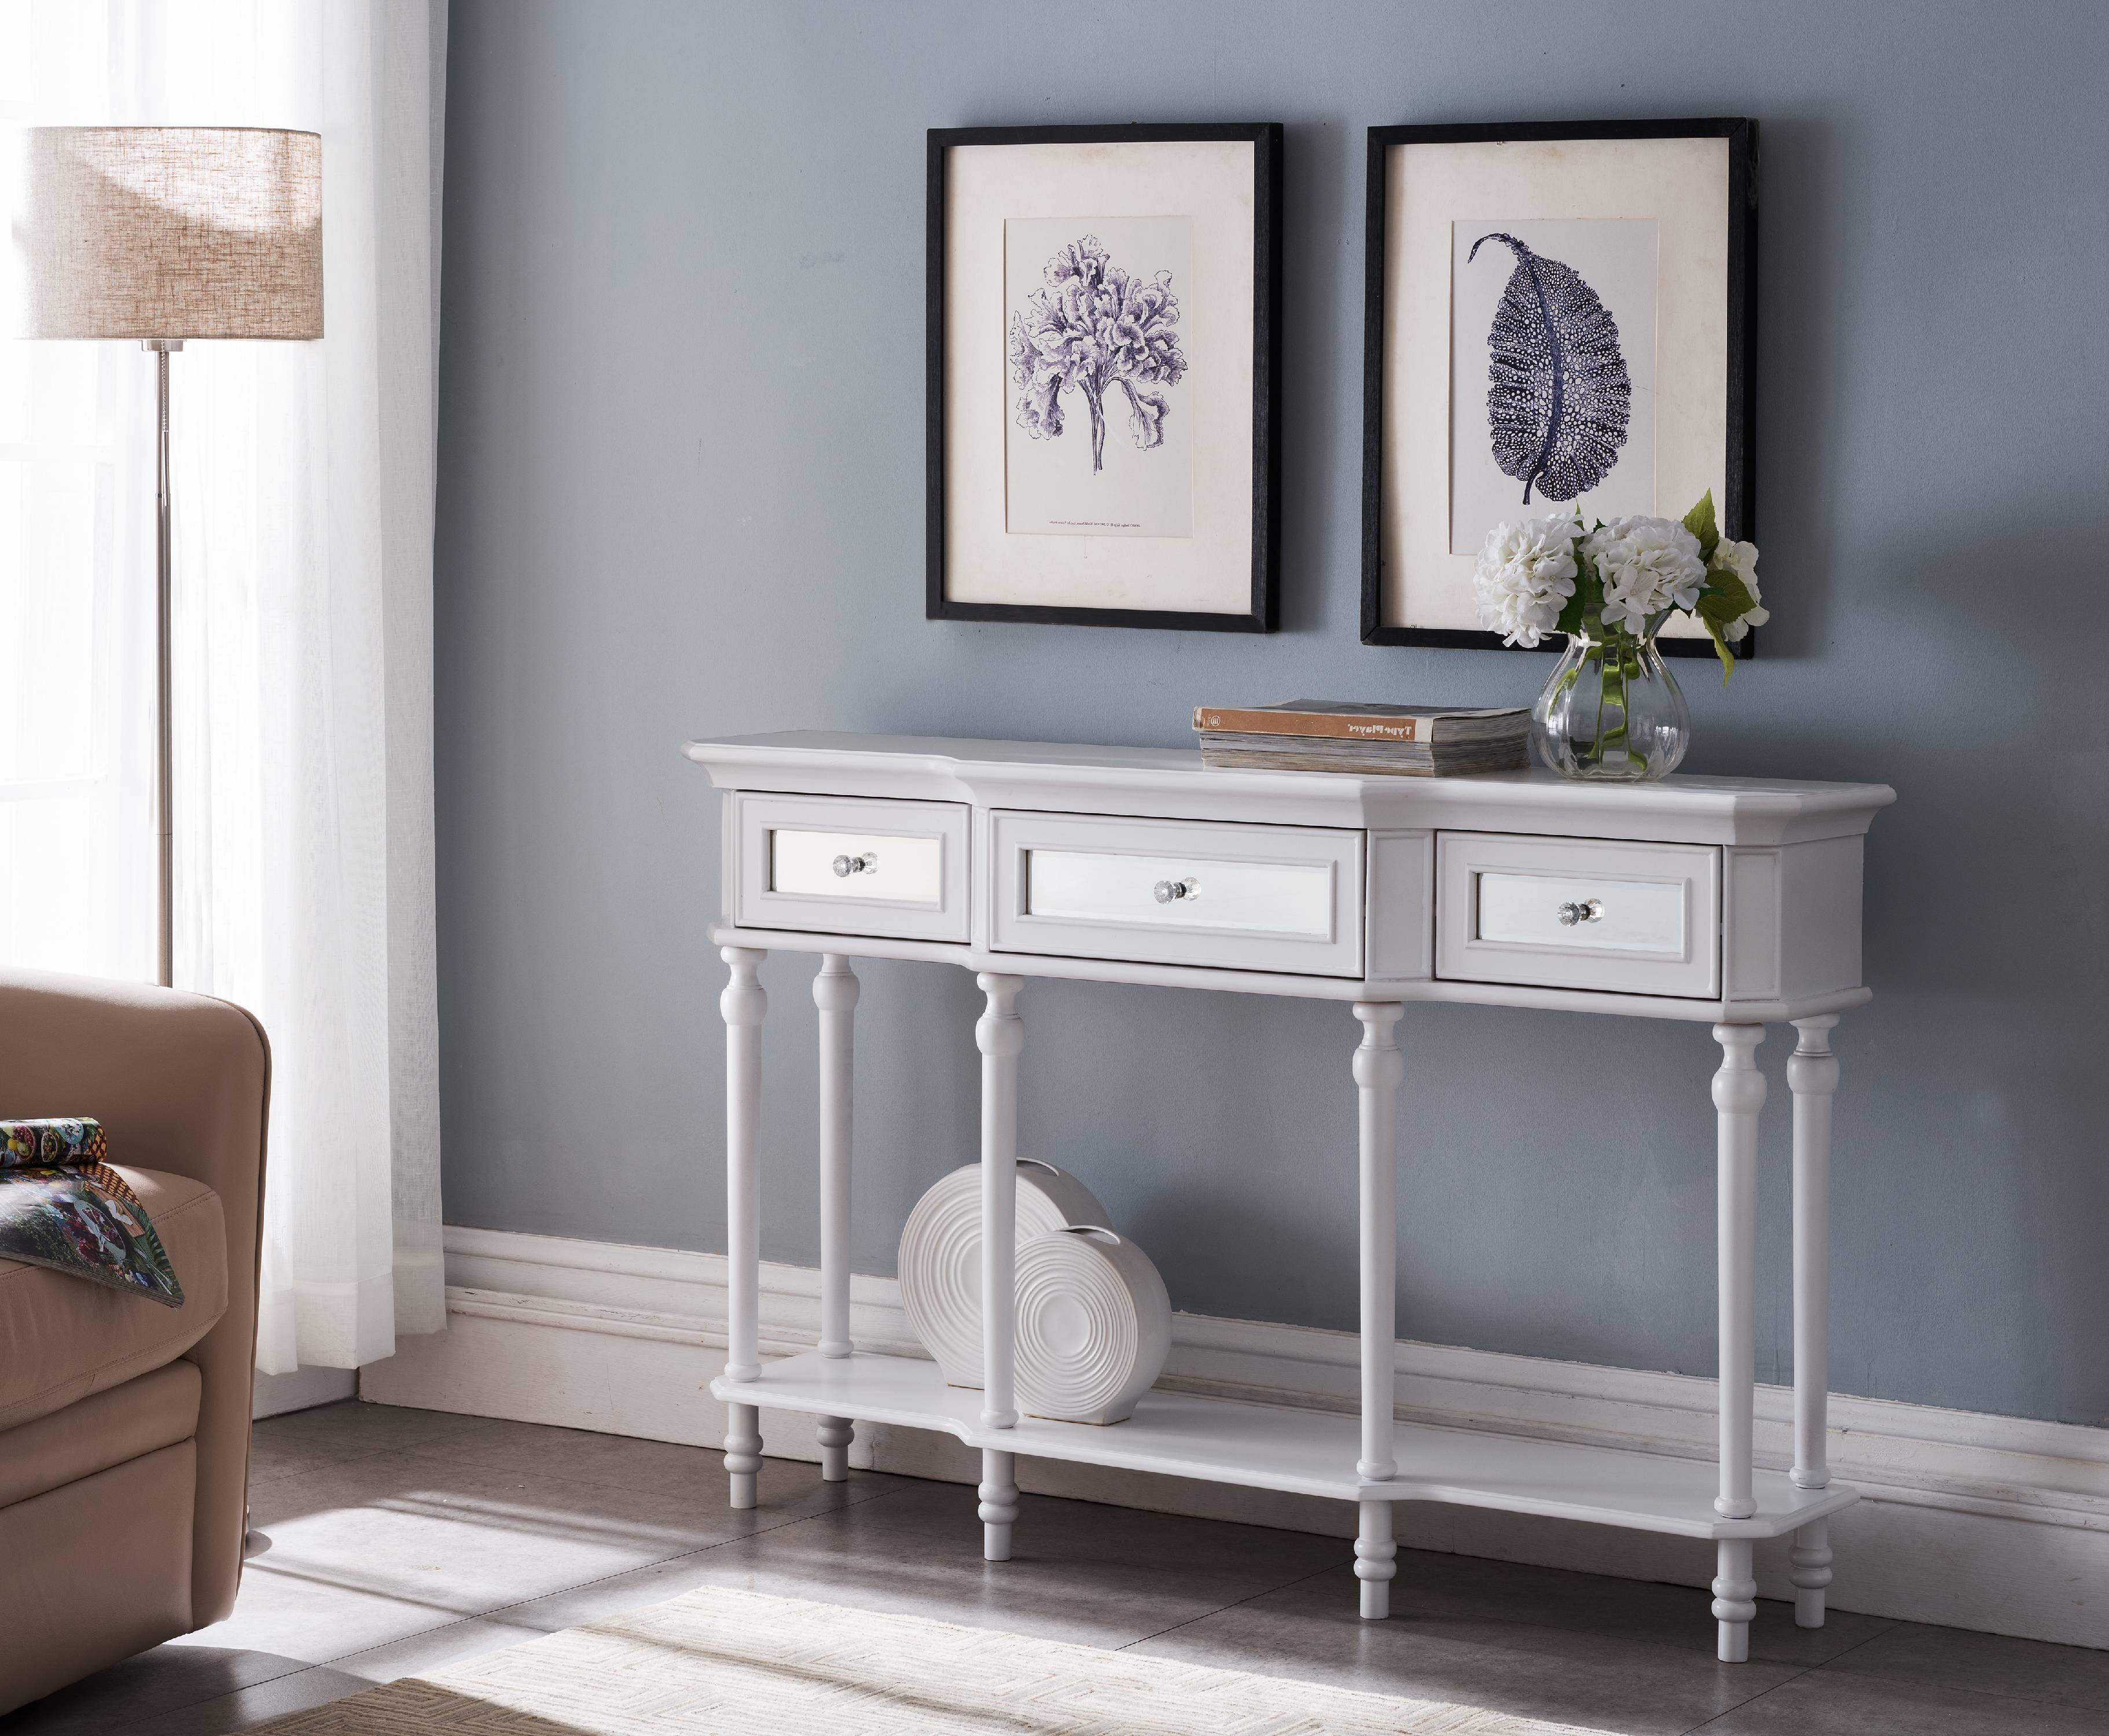 Phoenix White Wood Contemporary 3 Mirrored Drawers Console Table With  Storage Shelf   Walmart.com